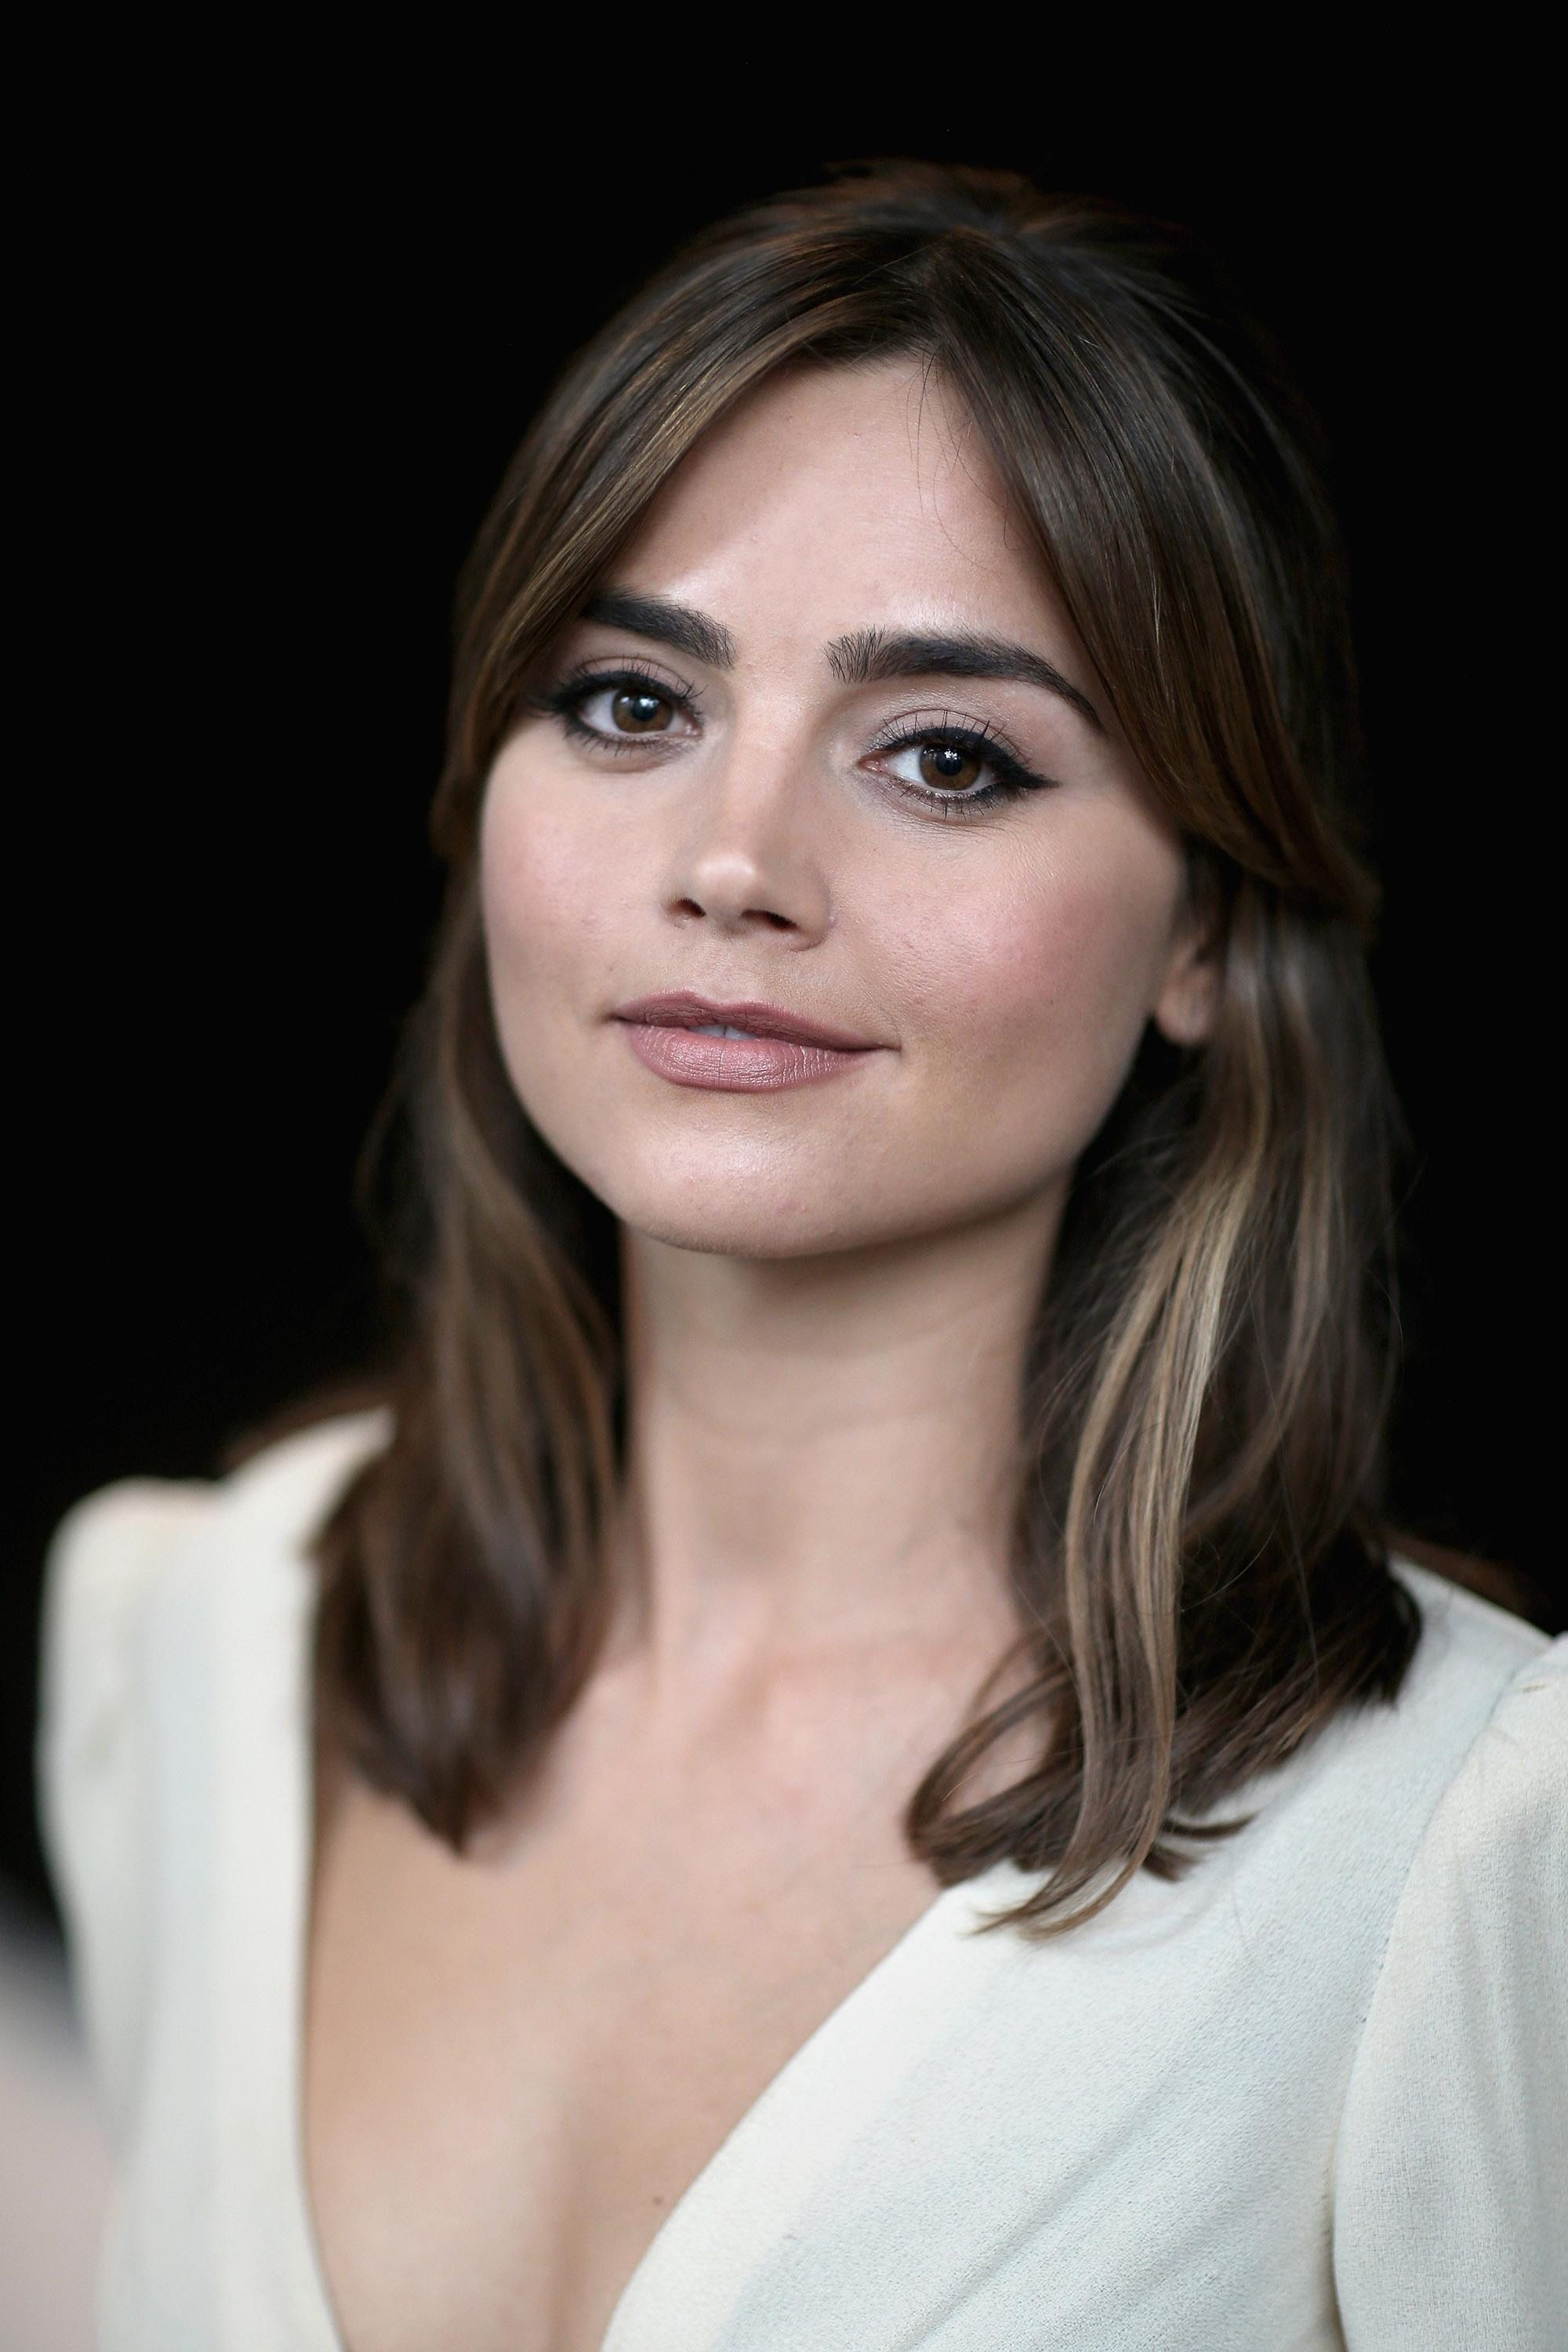 21 Pictures of Dr. Who Actress Jenna-Louise Coleman